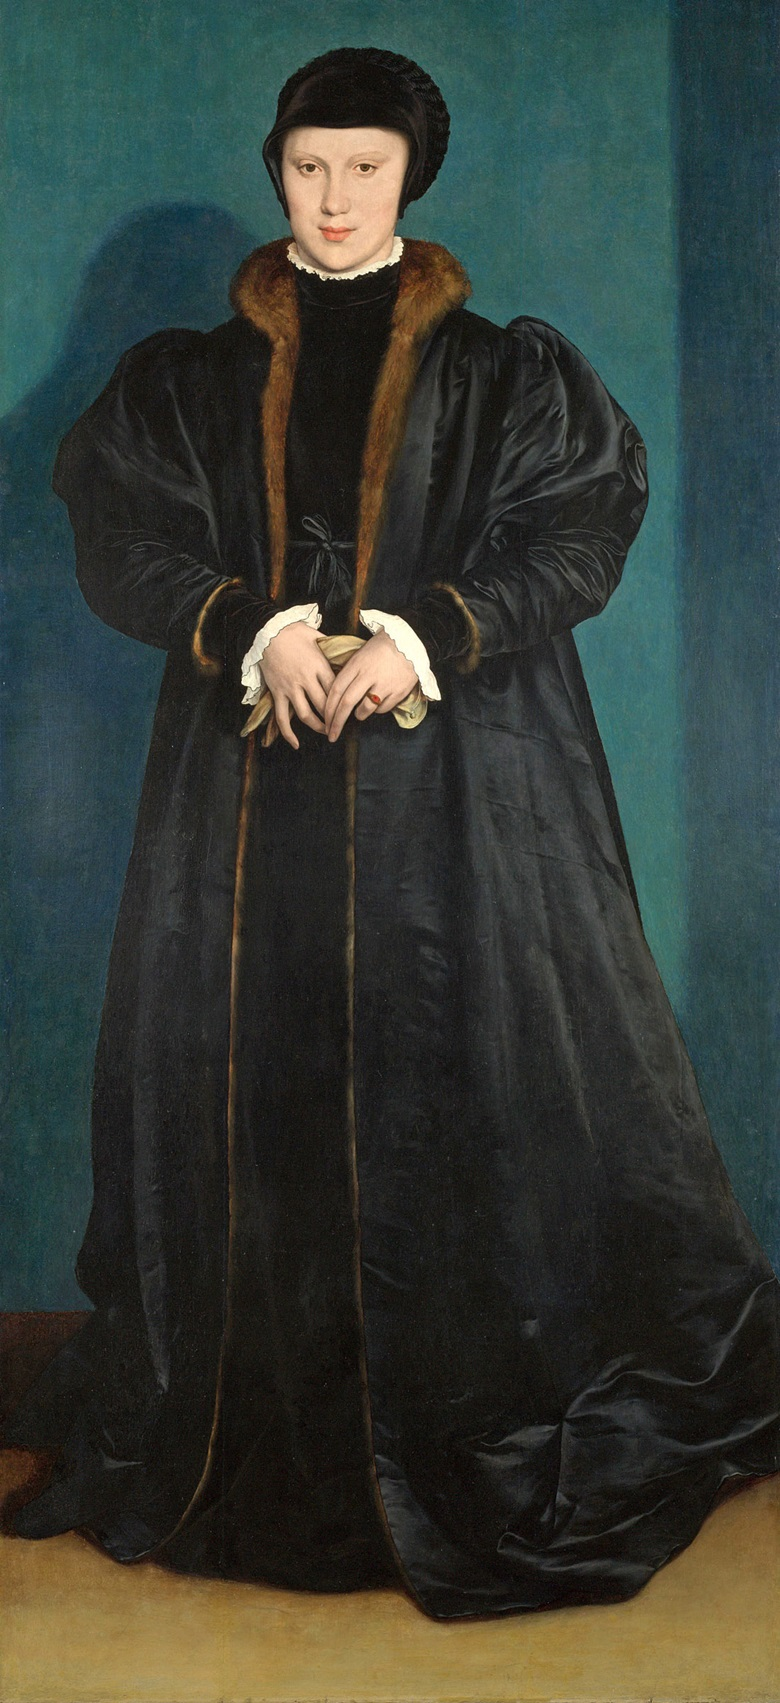 Hans Holbein the Younger, Christina of Denmark, Duchess of Milan, probably 1538. Photo National Gallery, London, UKBridgeman Images